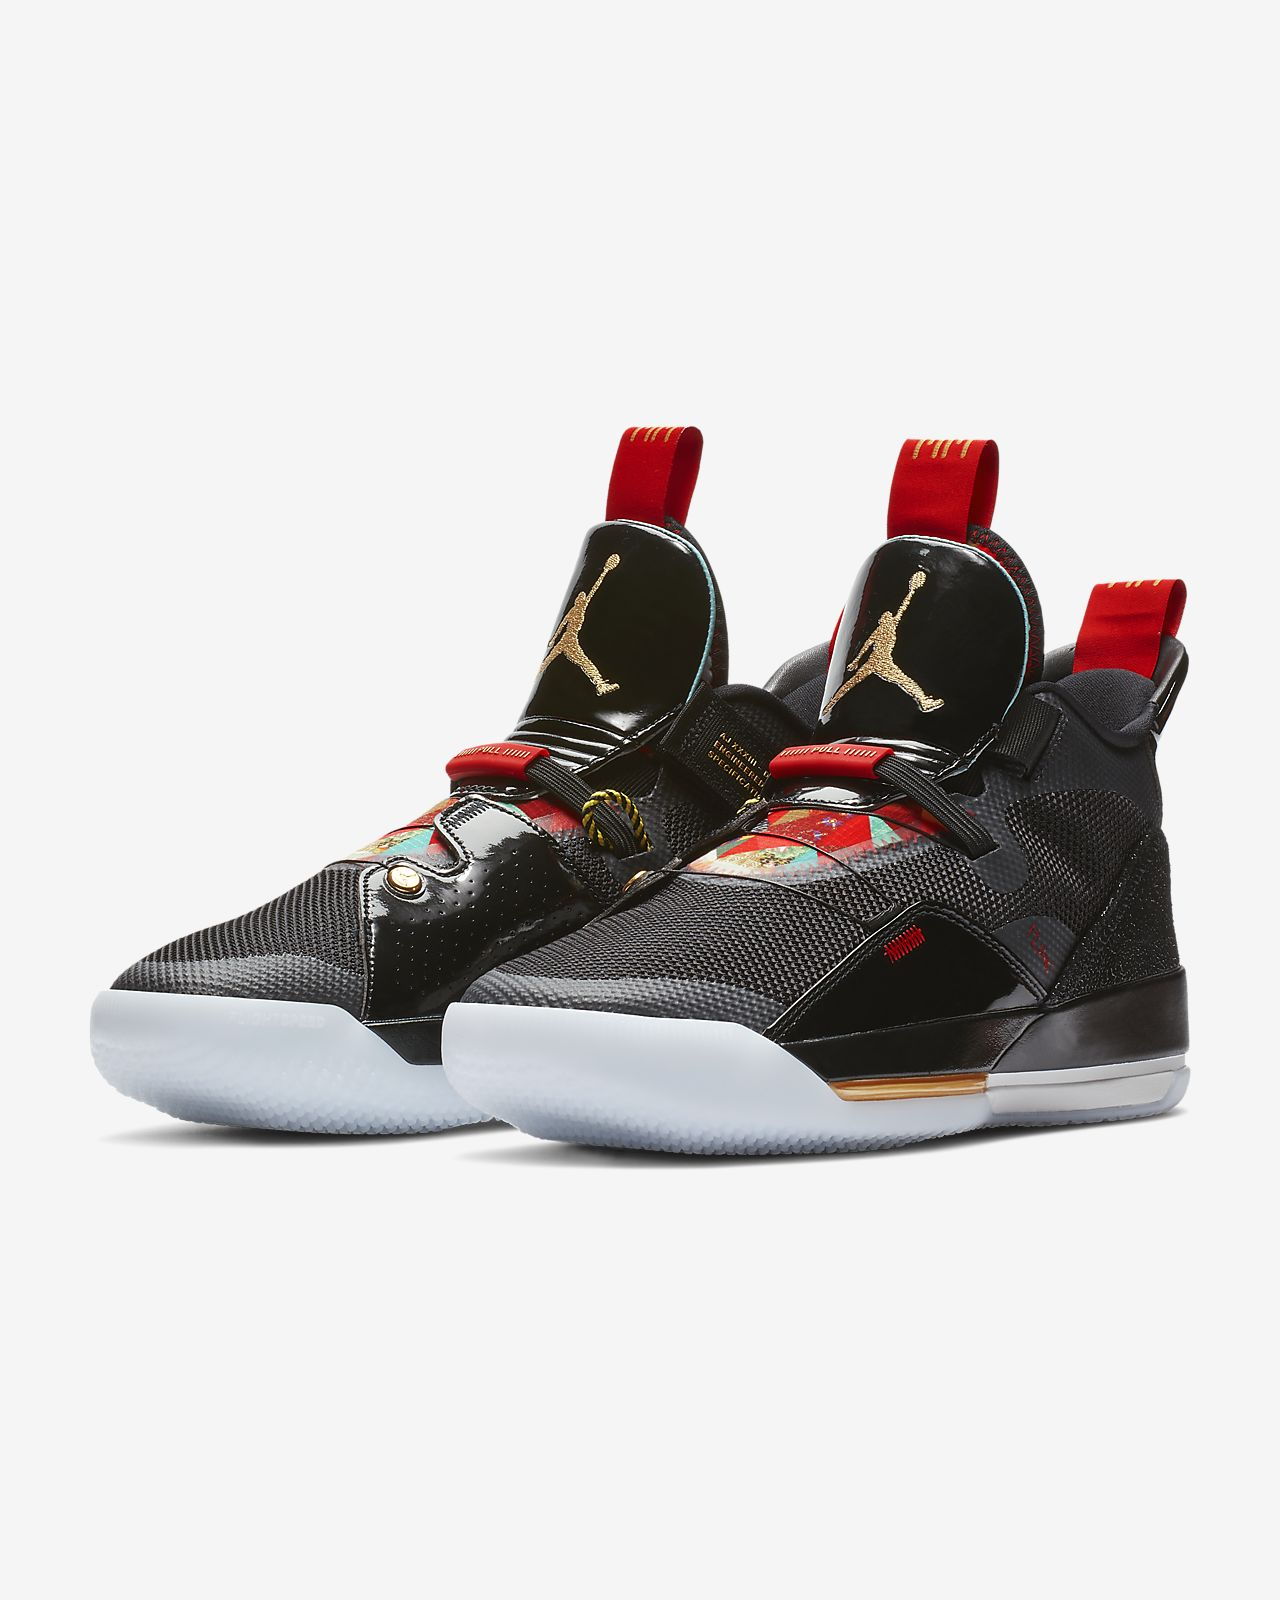 b6a22876c96c24 Low Resolution Air Jordan XXXIII Basketball Shoe Air Jordan XXXIII Basketball  Shoe